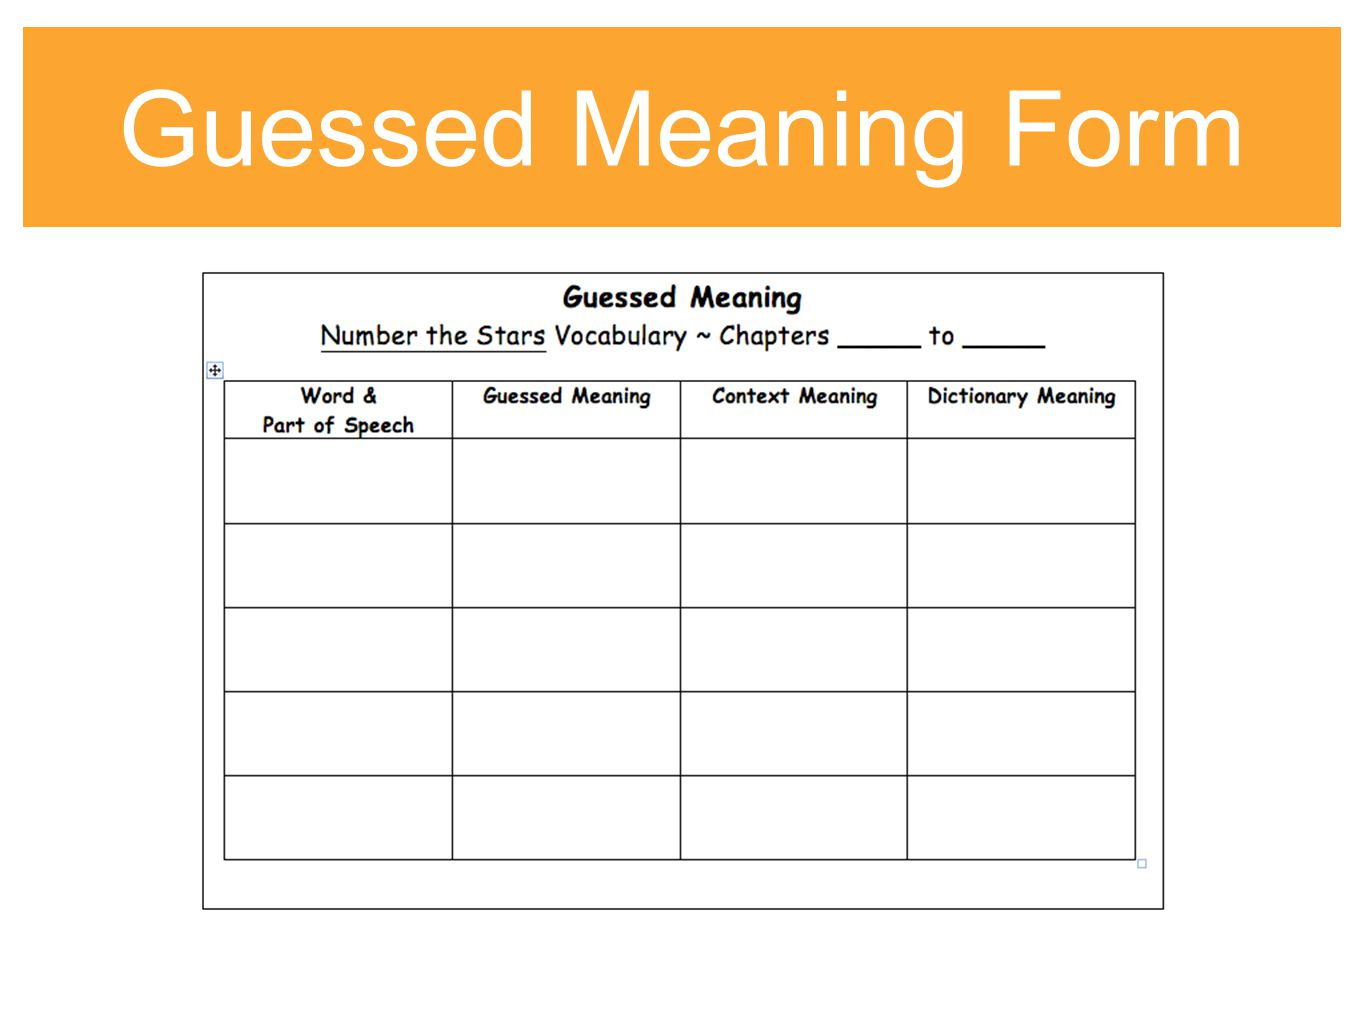 Guessed Meaning Number the Stars Vocabulary Chapters 7-9